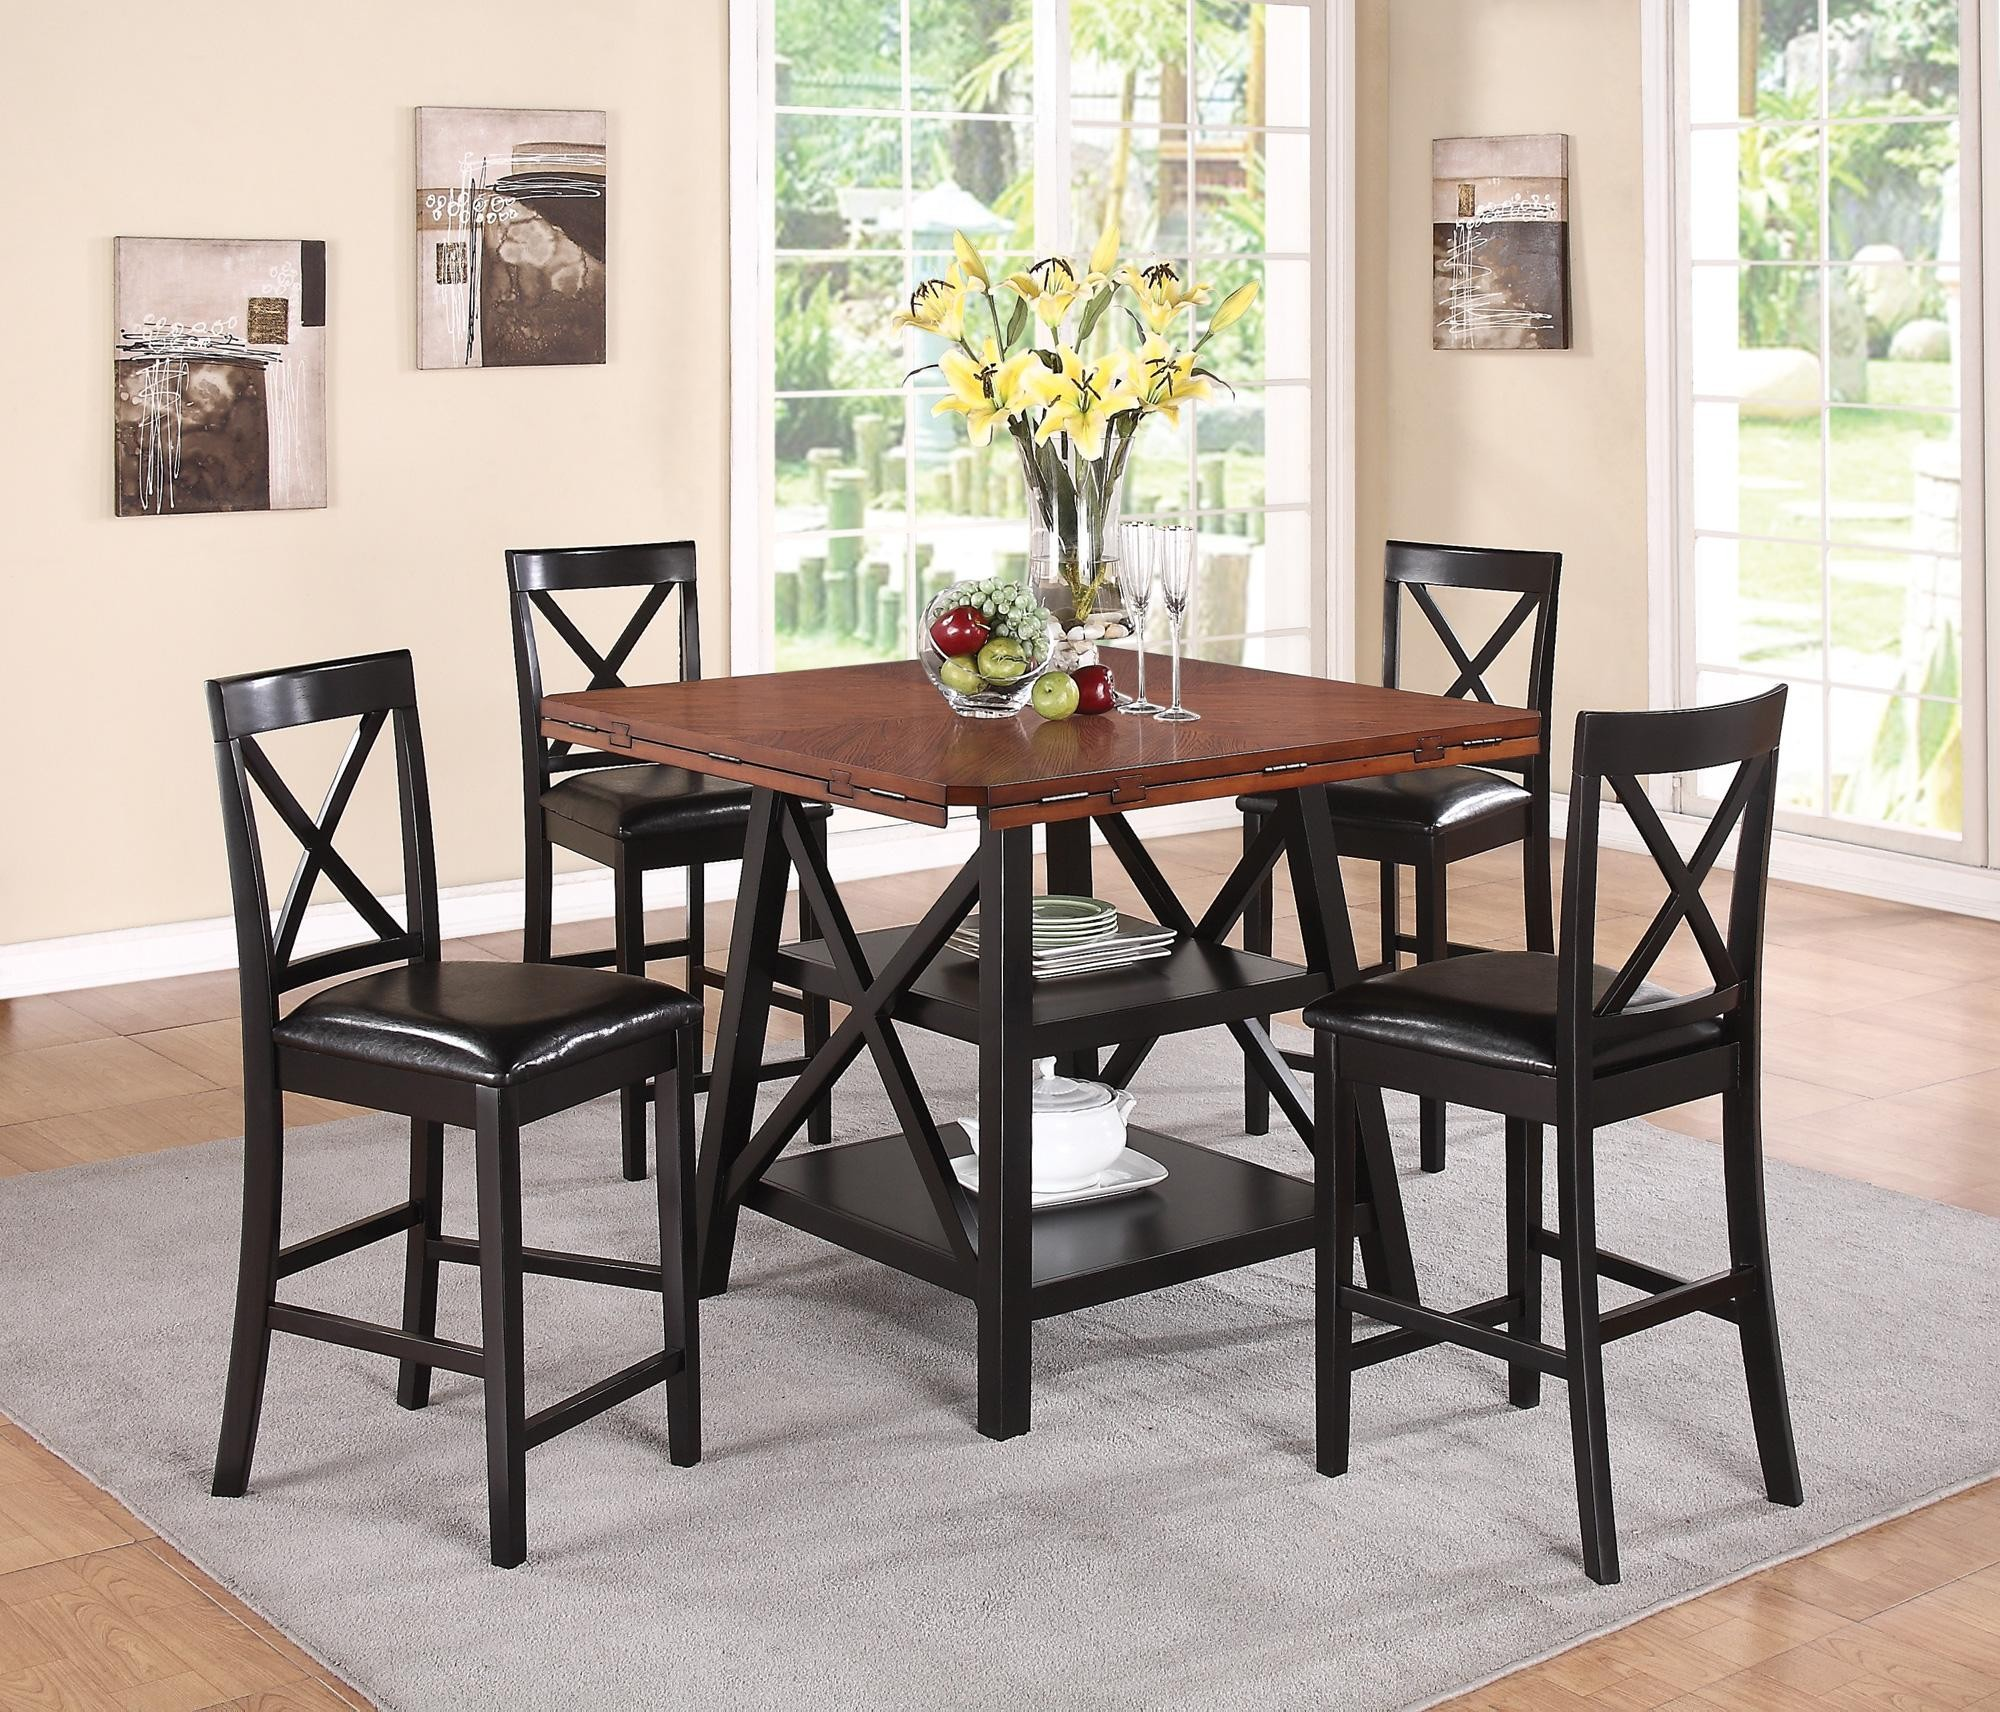 Austin round counter height dining room set 104178 coaster furniture - Dining room sets austin tx ...